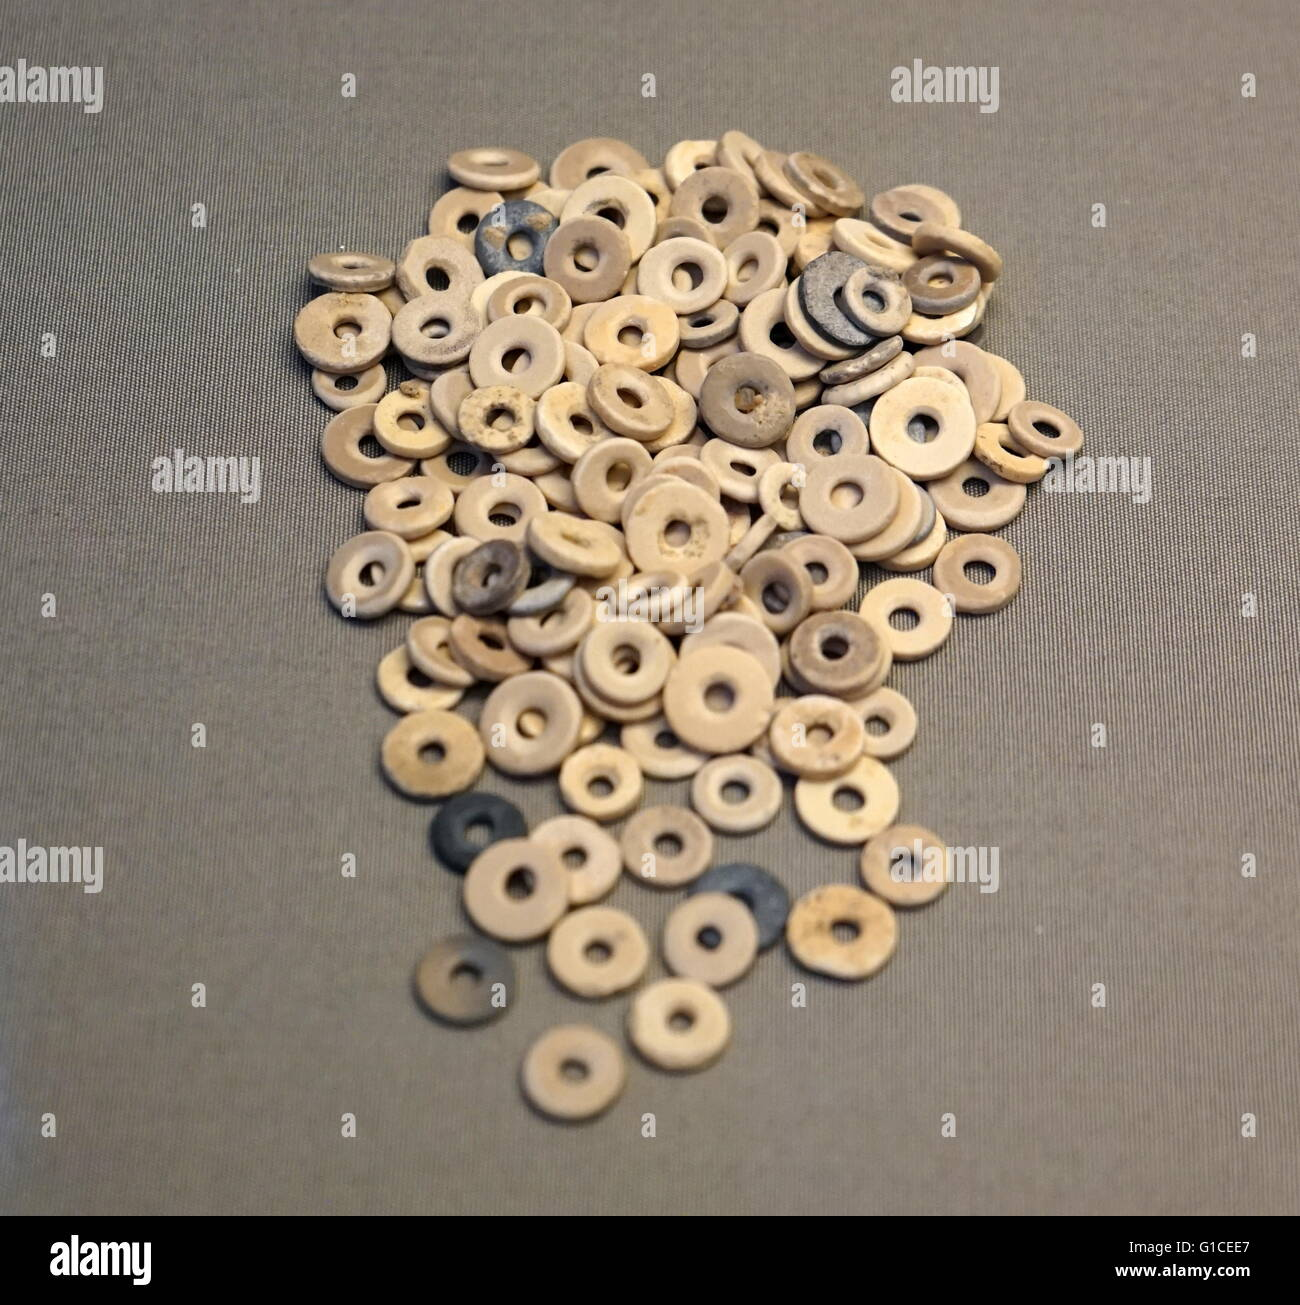 Beads that have been smoothed and polished by rubbing against a block of sandstone. - Stock Image